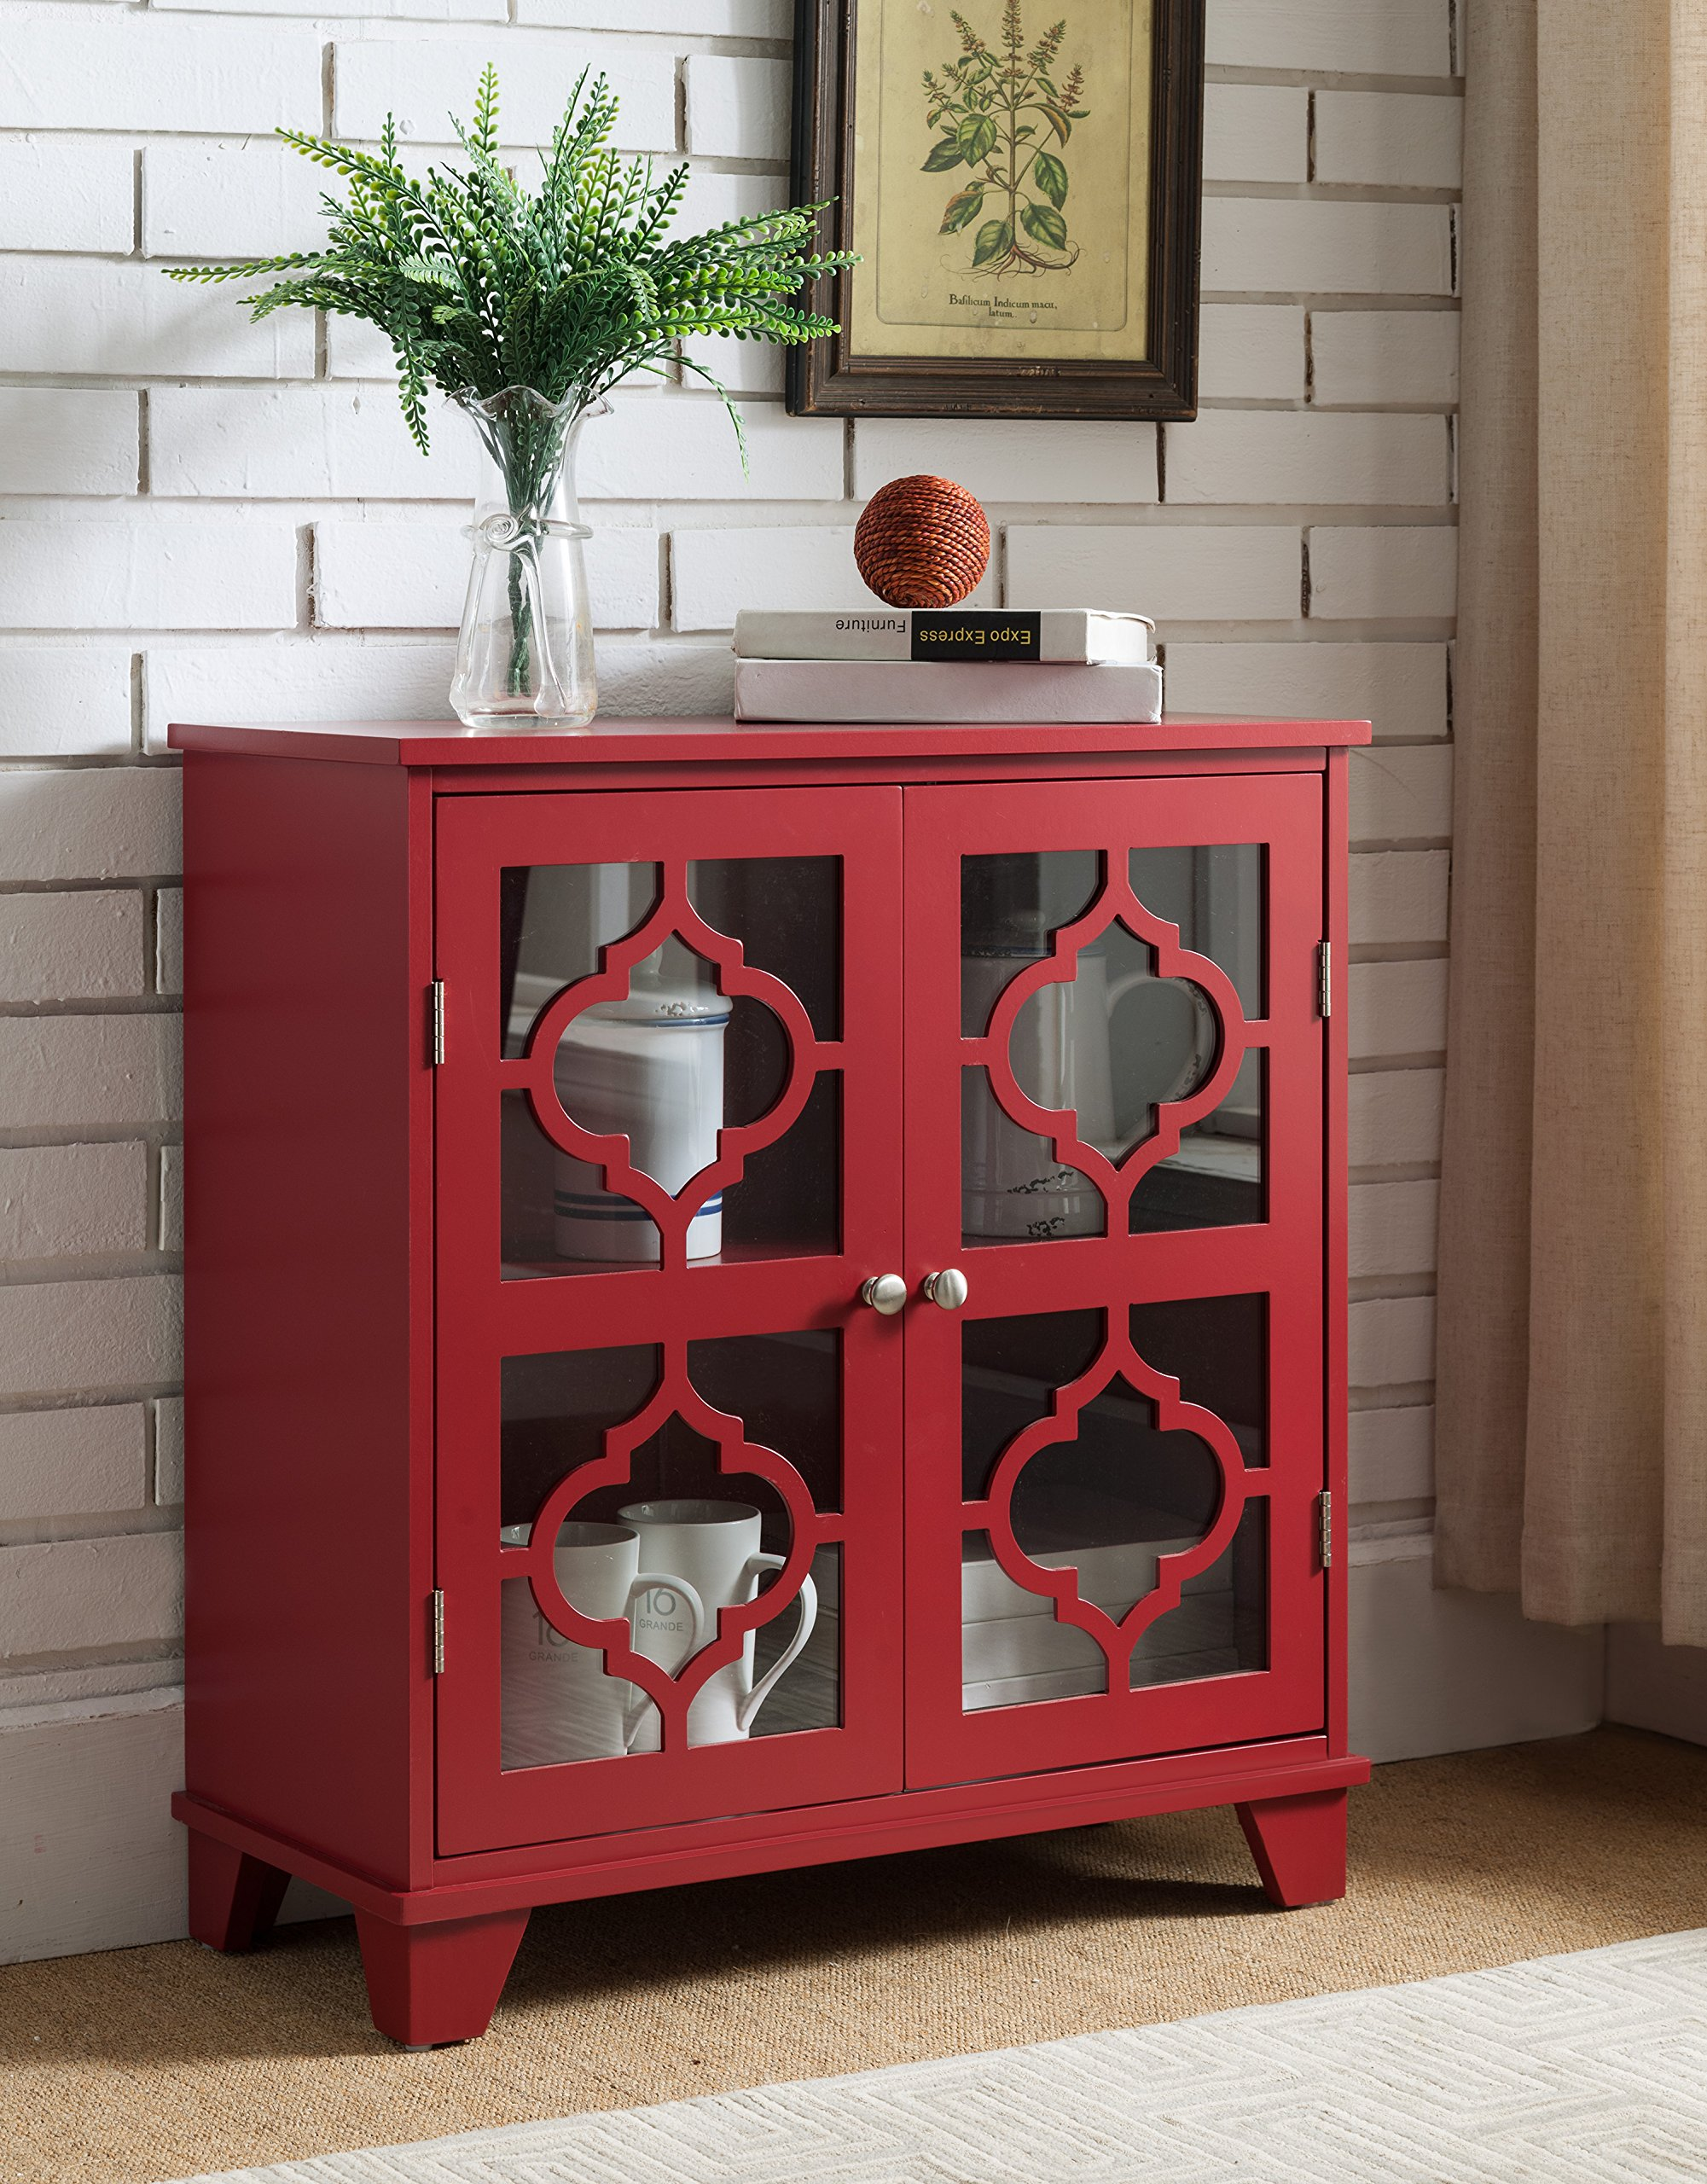 Kings Brand Furniture Red Finish Wood Buffet Cabinet Console Table - Kings Brand Furniture Red Finish Wood Buffet Cabinet Console Table. Add stylish storage to your home with this Kings Brand Furniture glass door cabinet. With two shelves and plenty of space, this cabinet adds storage room that's perfect for dishes, serving pieces, or anything you want to display. - sideboards-buffets, kitchen-dining-room-furniture, kitchen-dining-room - 919Q9svpFzL -